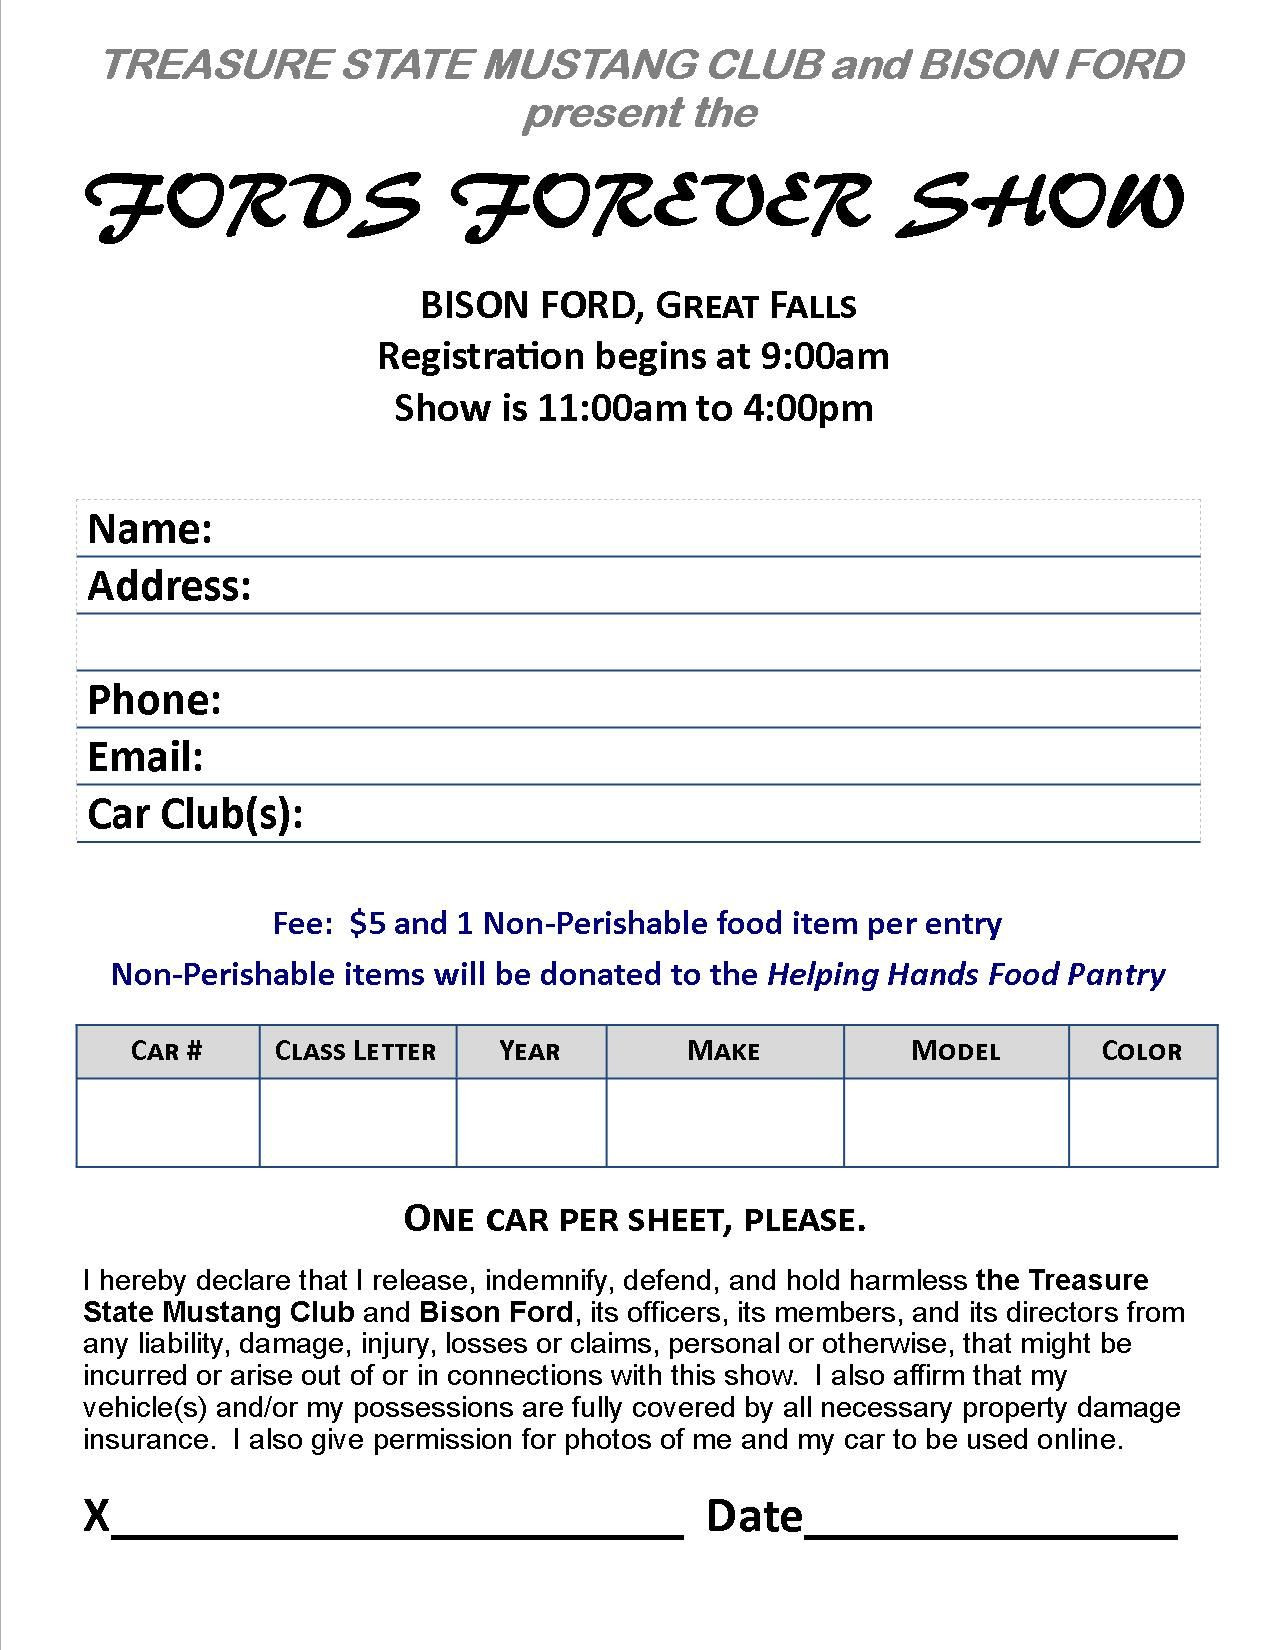 Food Sign Up Sheet Nice 2015 fords forever Car Show Registration form to Pre